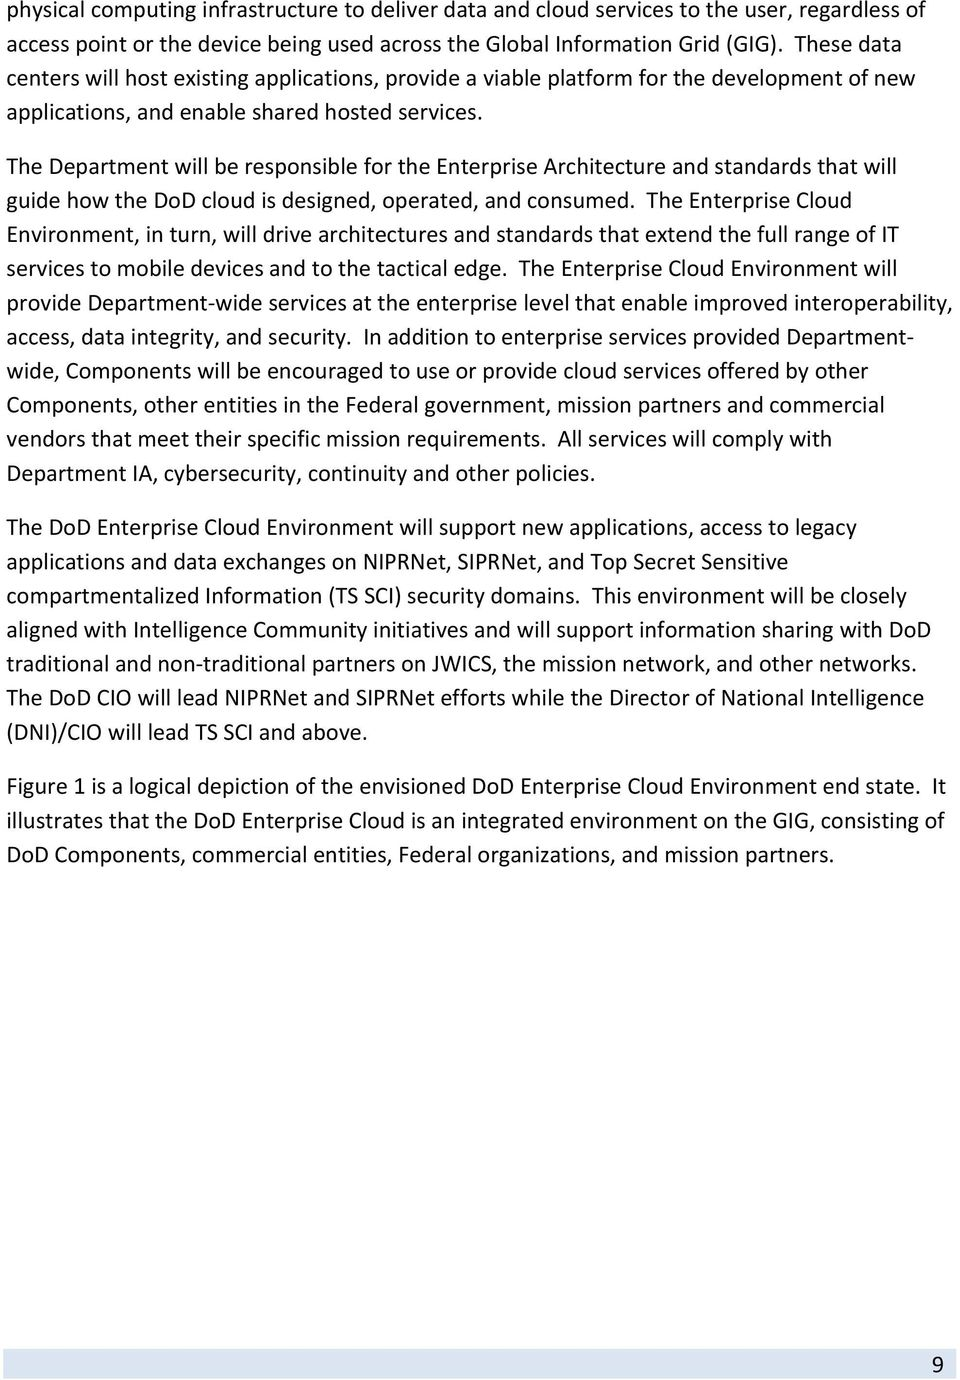 The Department will be responsible for the Enterprise Architecture and standards that will guide how the DoD cloud is designed, operated, and consumed.